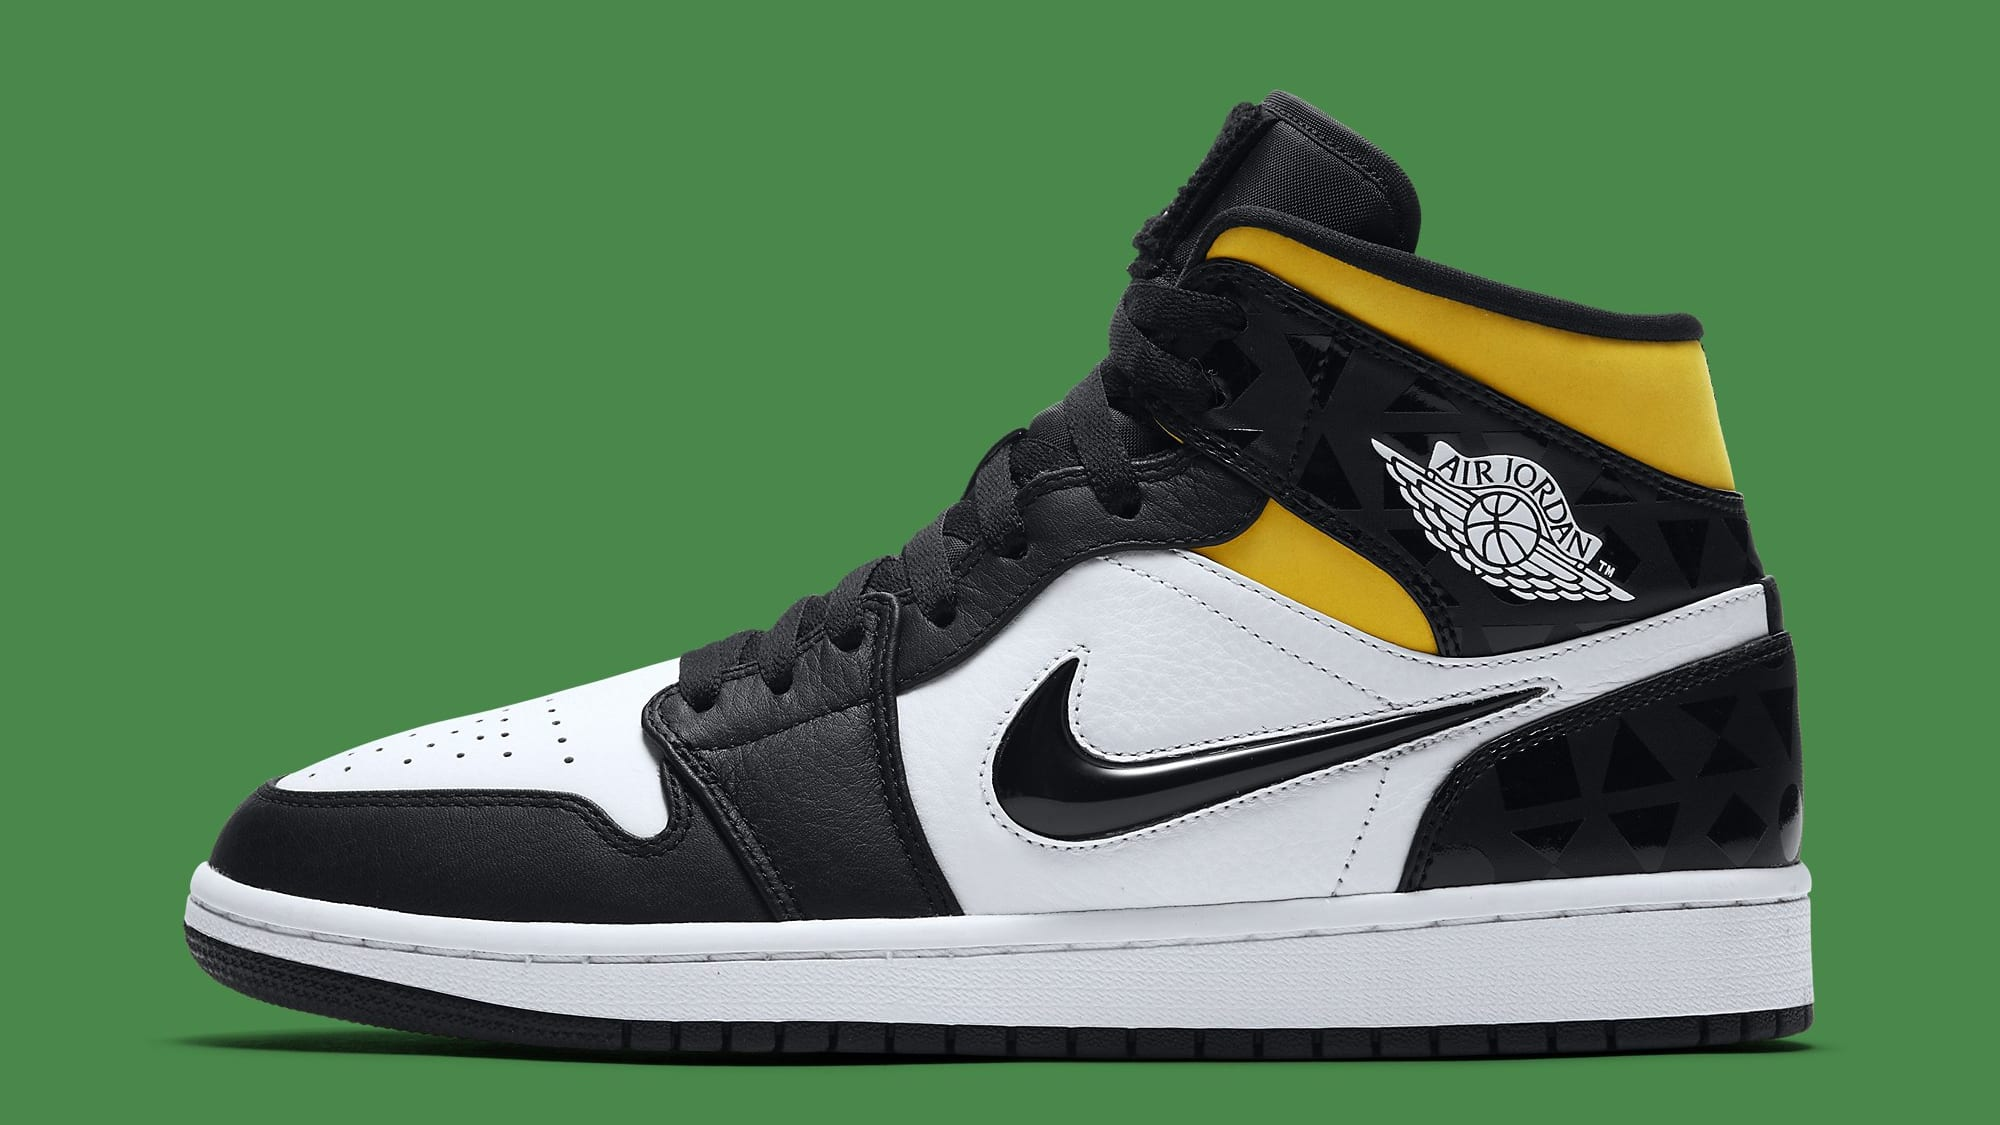 Air Jordan 1 Retro Mid 'Quai 54' CJ9219-001 Lateral